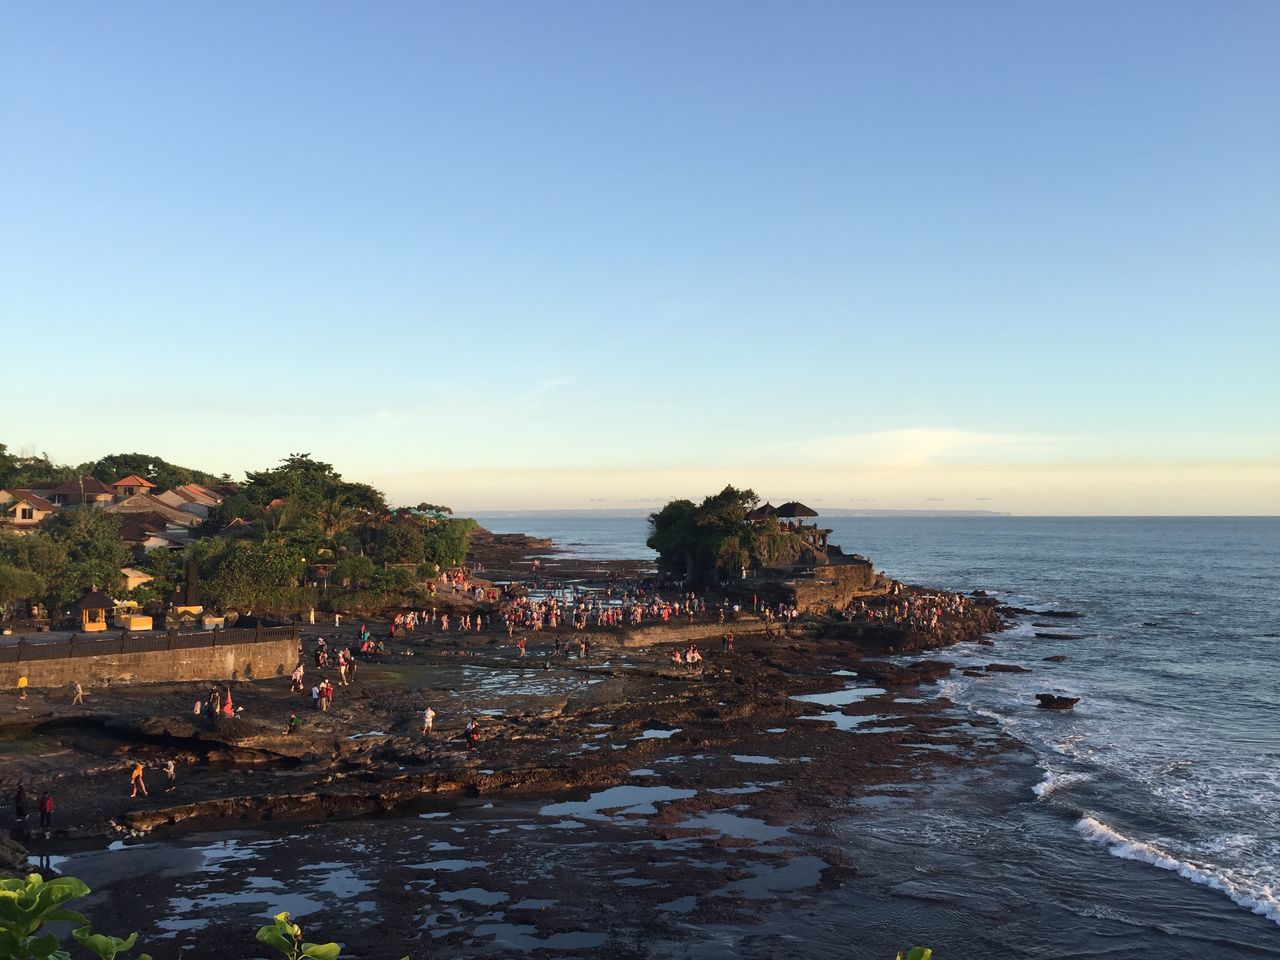 Tanah Lot, Bali, Indonesia. Bali Beauty In Nature Building Exterior Horizon Over Water INDONESIA Nature Non-urban Scene Outdoors Rock Formation Sea Sky Tanah Lot Tourism Tranquil Scene Tranquility Travel Destinations Water Waterfront